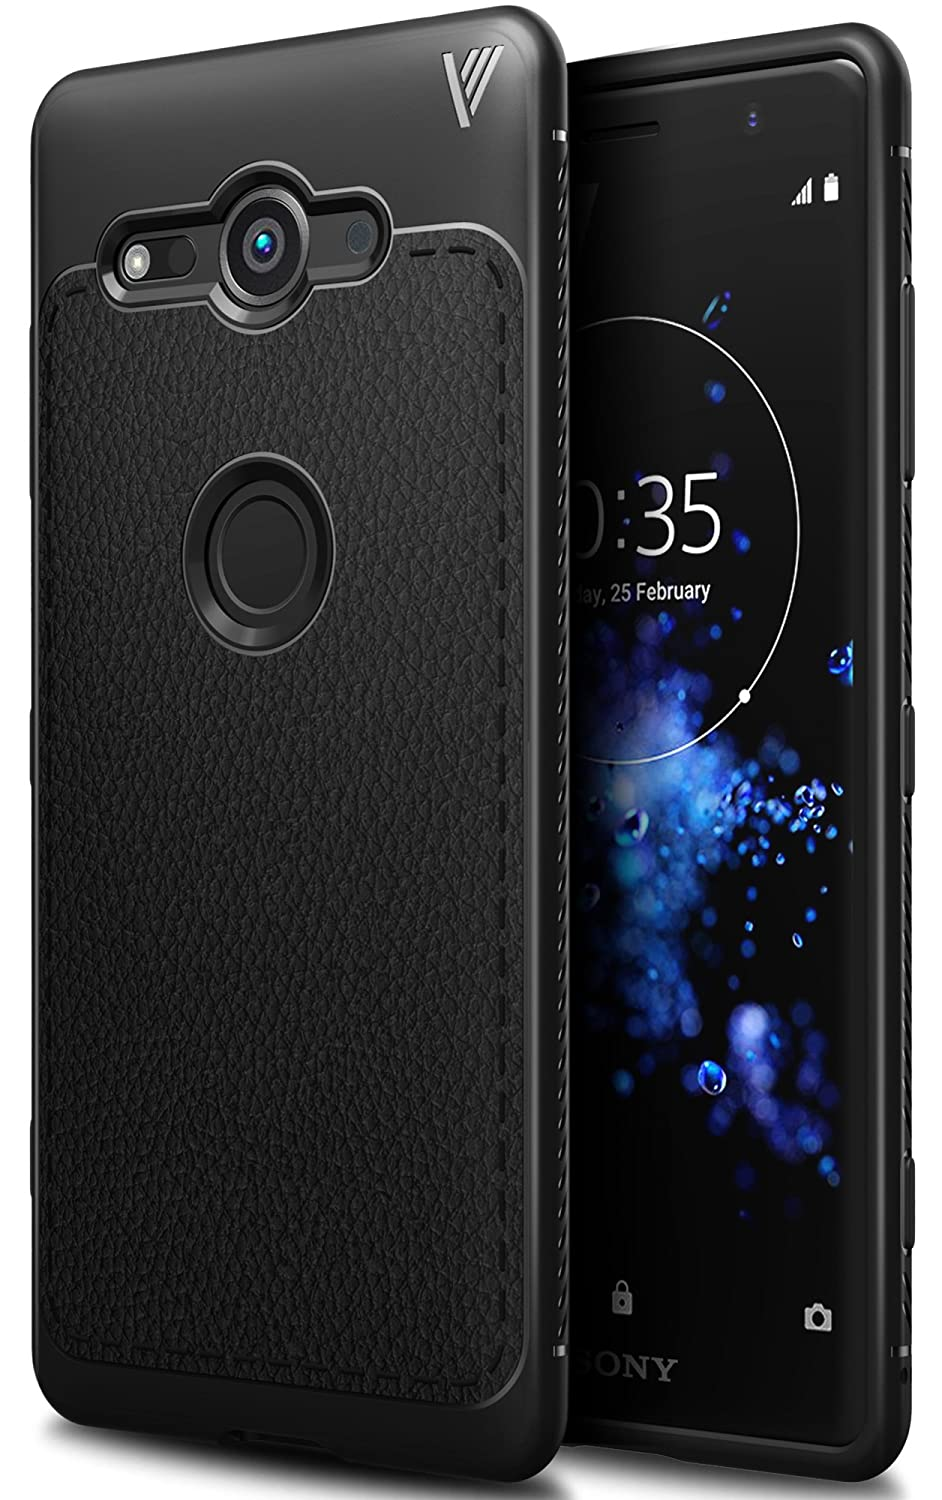 online store 91d46 658a2 Sony Xperia XZ2 Compact case, KuGi Sony Xperia XZ2 Compact case, SS  [Scratch Resistant] Premium Flexible Soft Anti Slip TPU Case for Sony  Xperia XZ2 ...